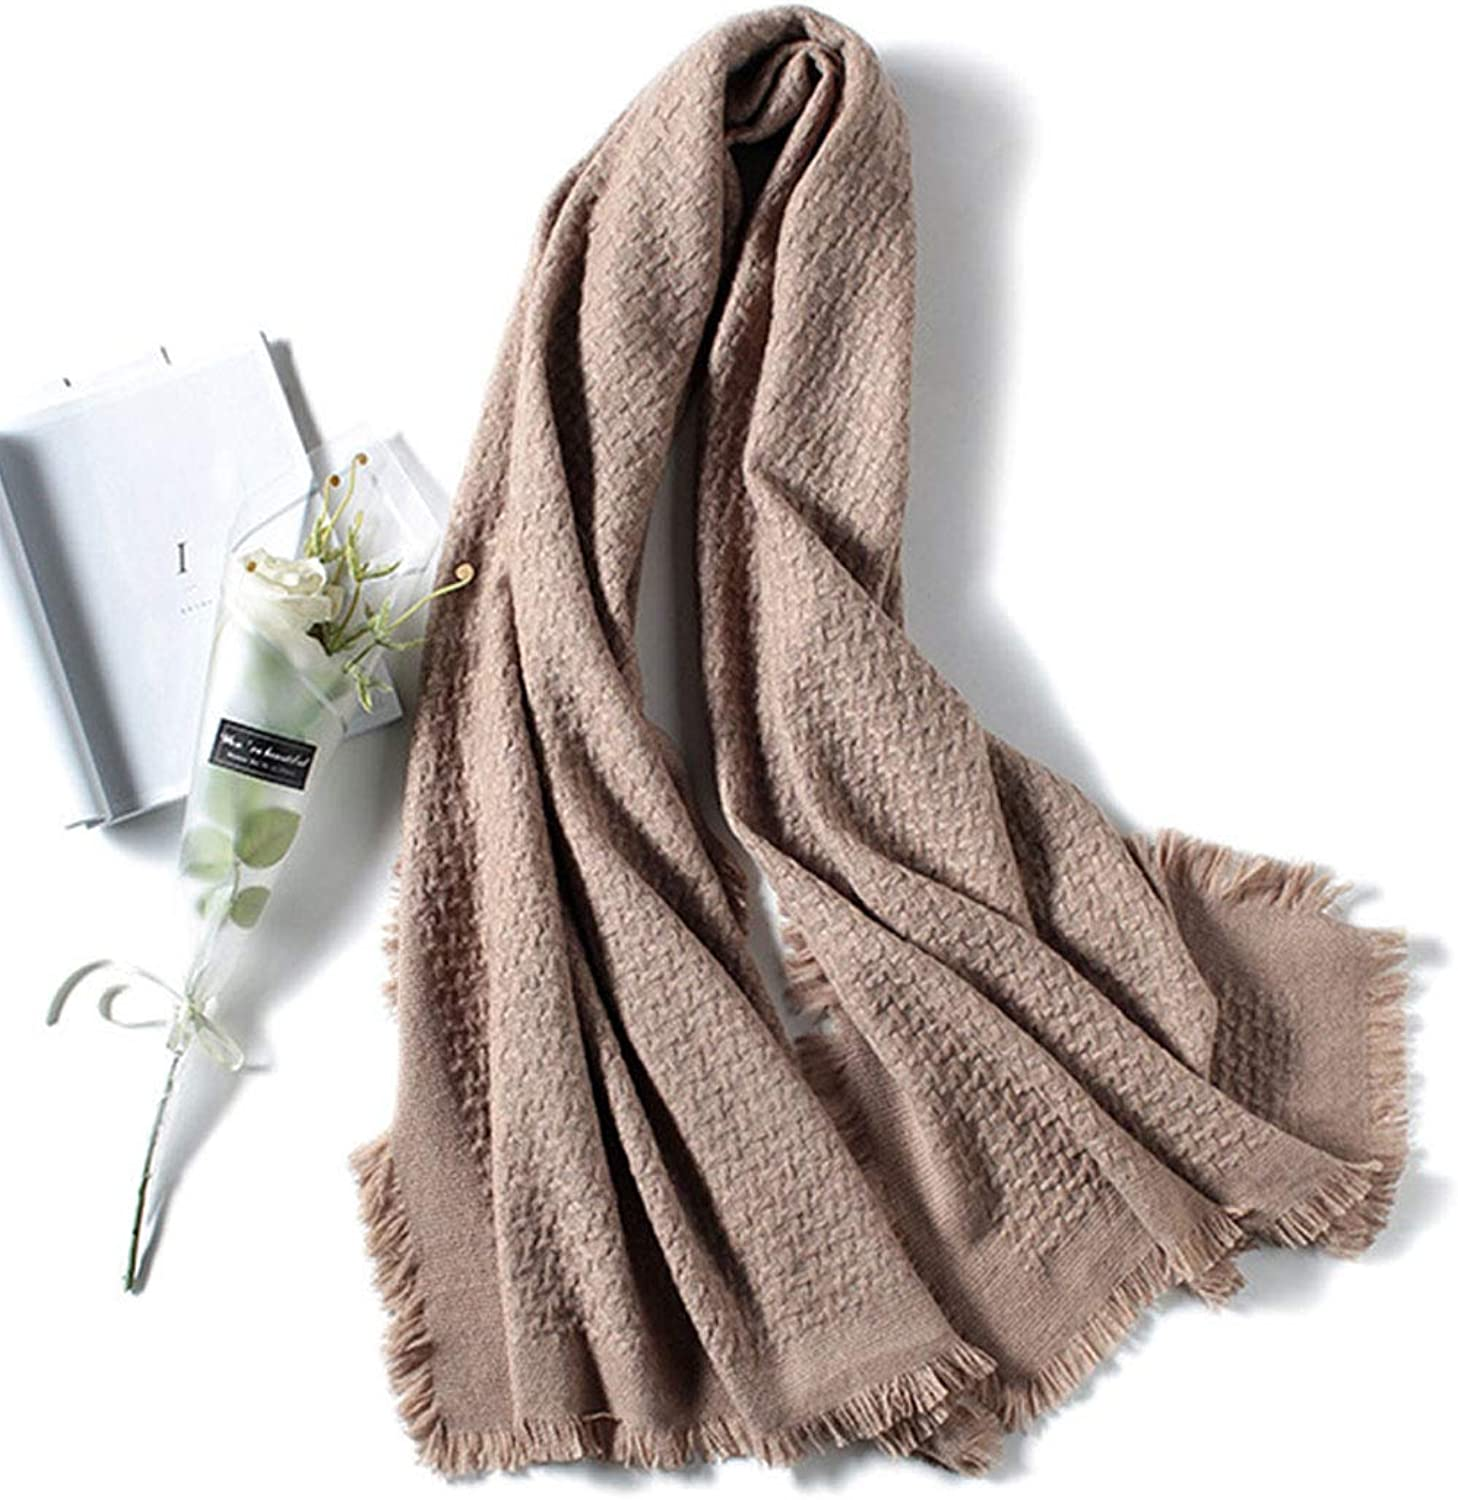 HUIFANG Thick Wool Shawl Women Increase Europe and America Autumn and Winter Woven Scarves Dualuse Wild Warm Camel 70  200CM A (color   Brown, Size   70  200CM)